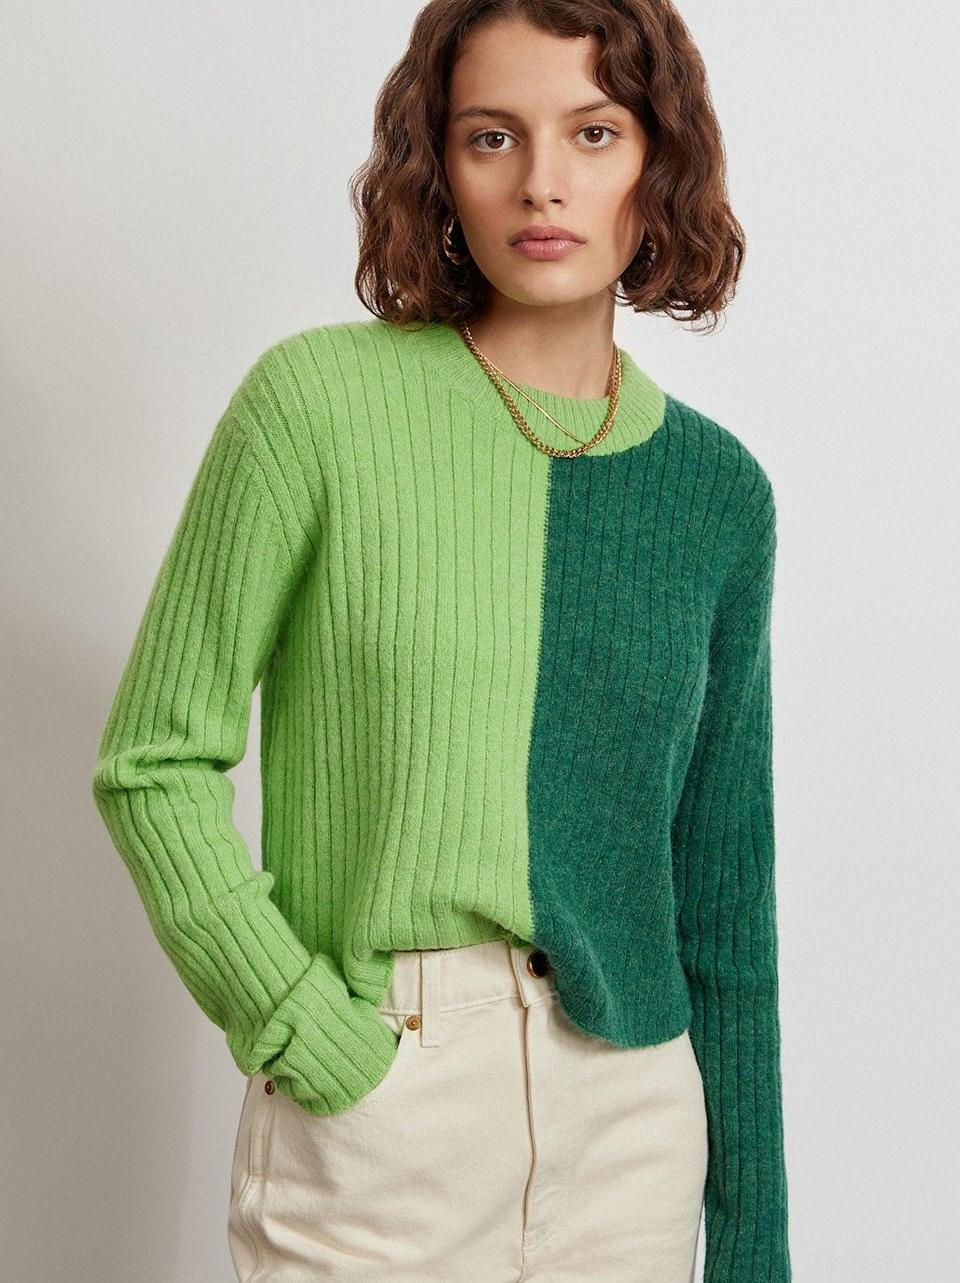 """<br><br><strong>Kitri x Jessie Bush</strong> Rory Colour Block Sweater, $, available at <a href=""""https://kitristudio.com/products/rory-colour-block-sweater?variant=39519993167923"""" rel=""""nofollow noopener"""" target=""""_blank"""" data-ylk=""""slk:Kitri"""" class=""""link rapid-noclick-resp"""">Kitri</a>"""